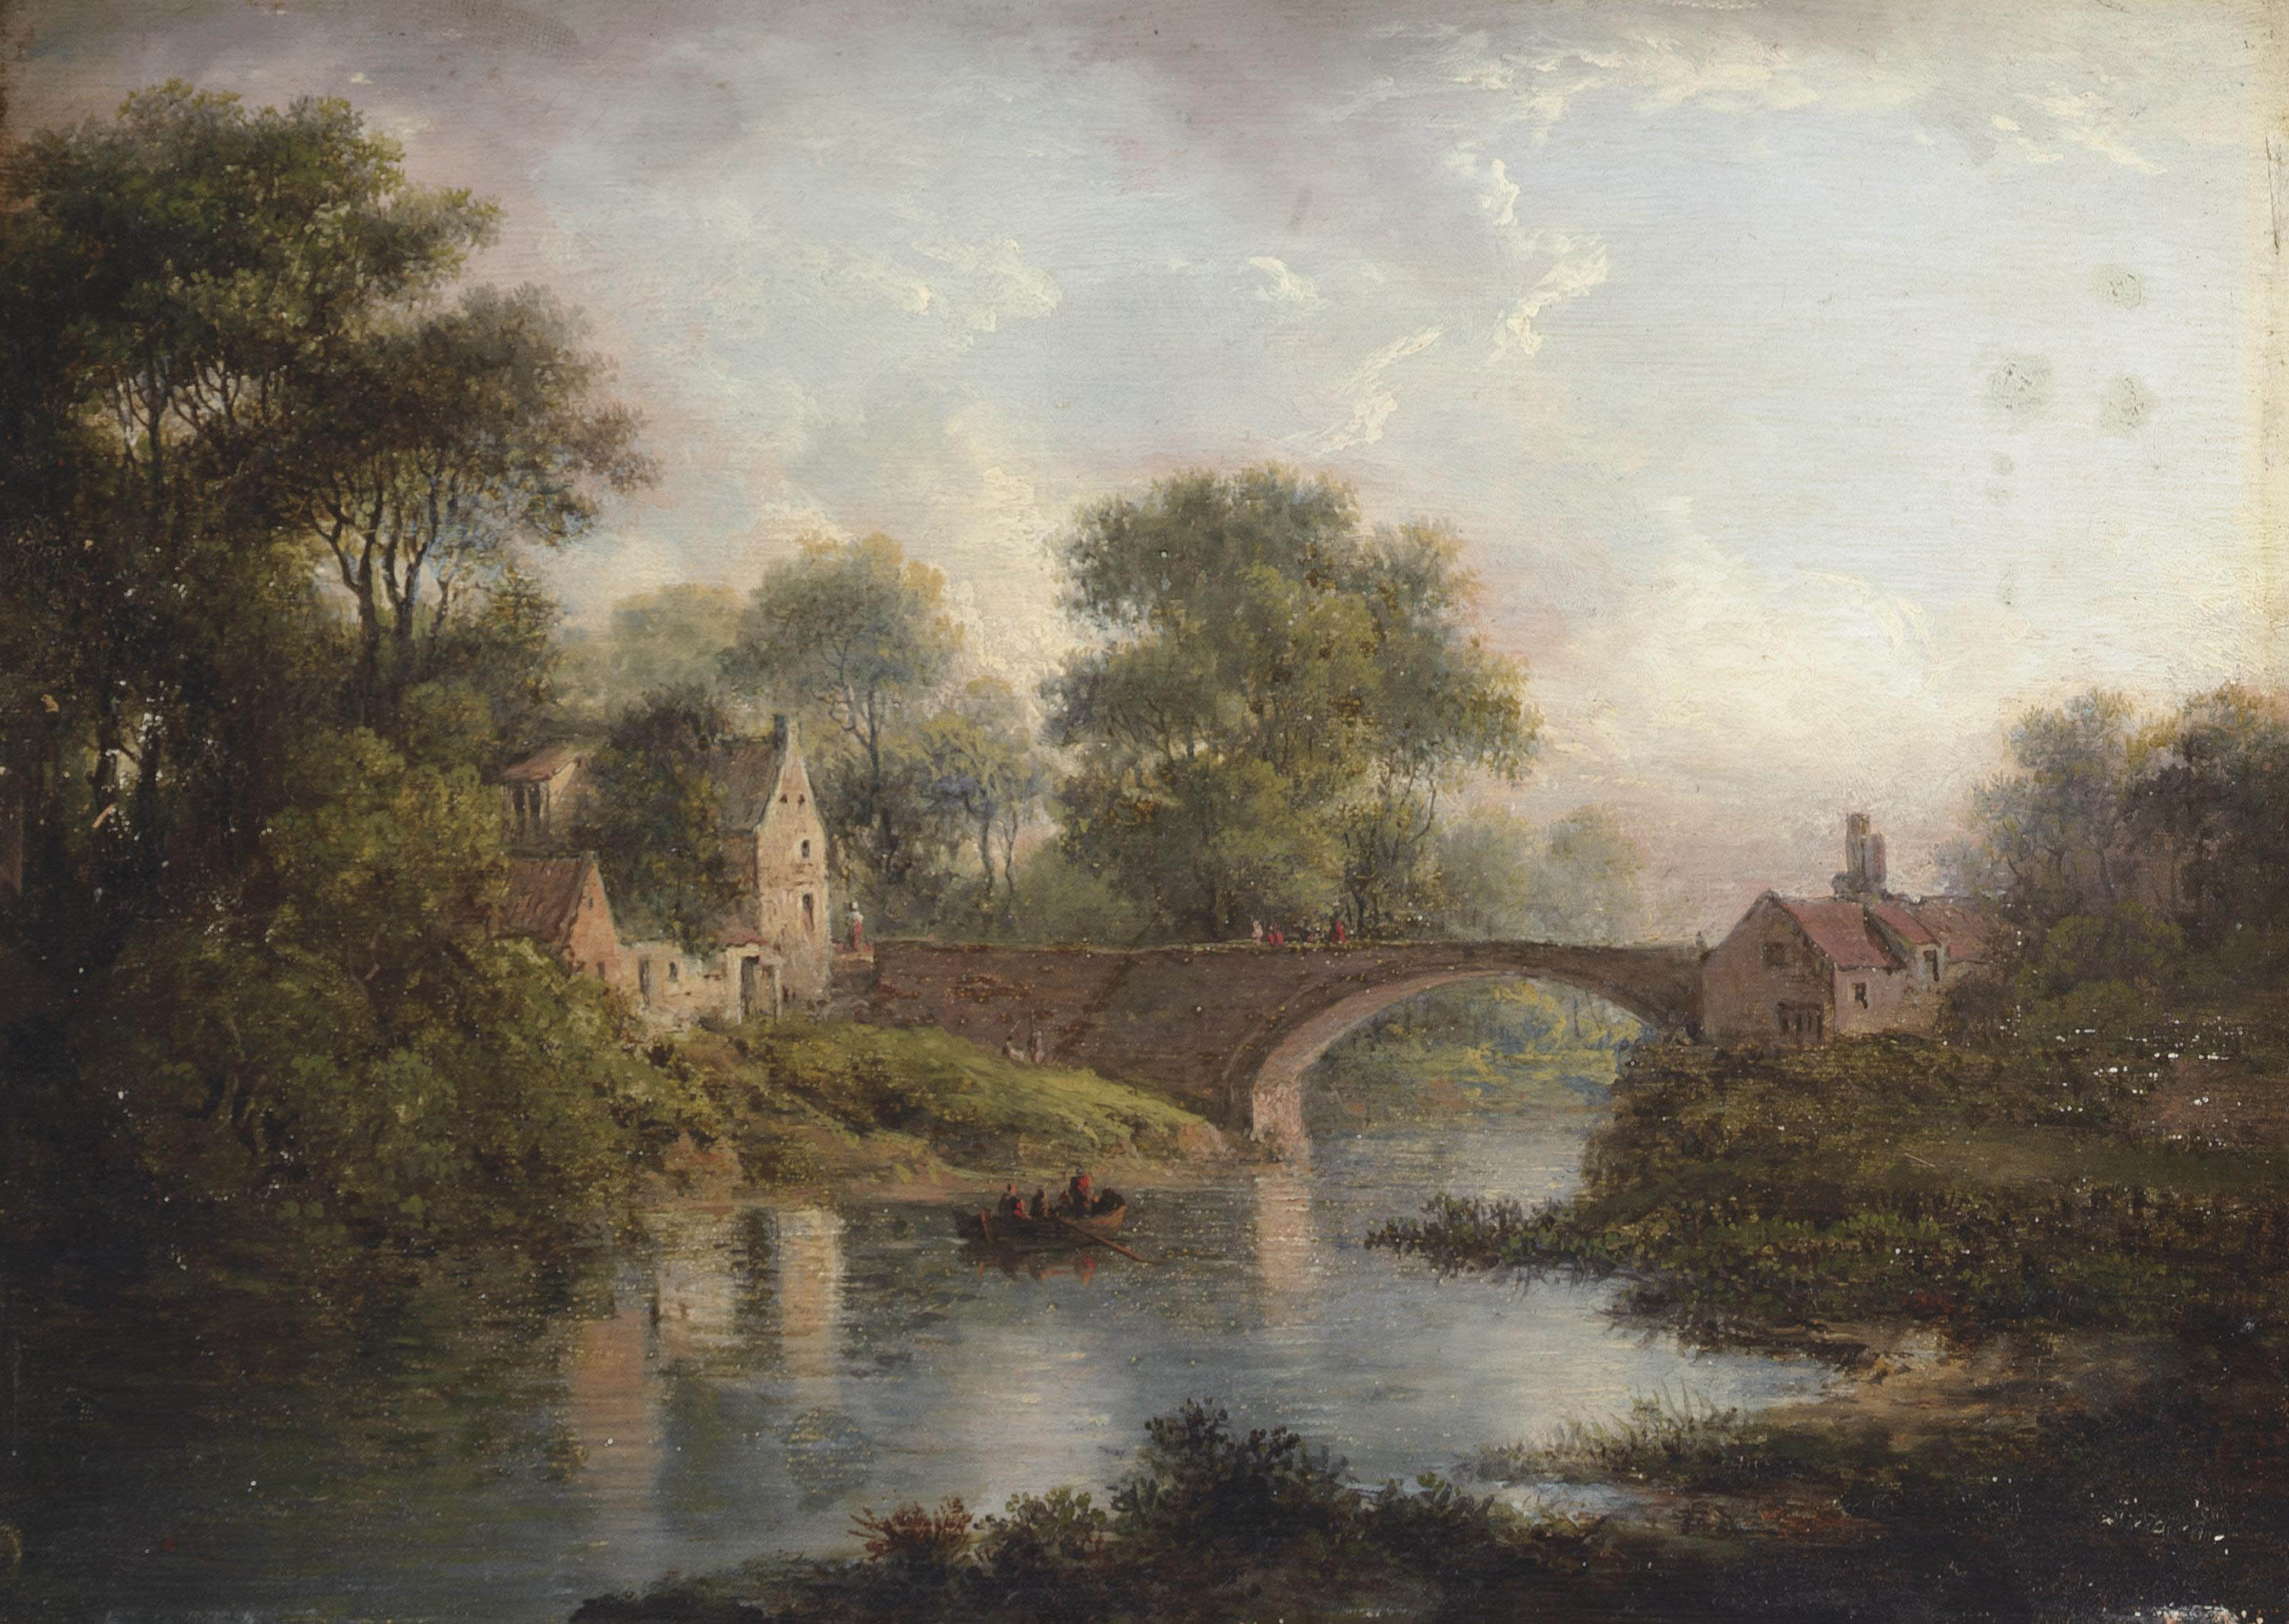 A wooded river landscape, with figures on a boat, a bridge and a village beyond